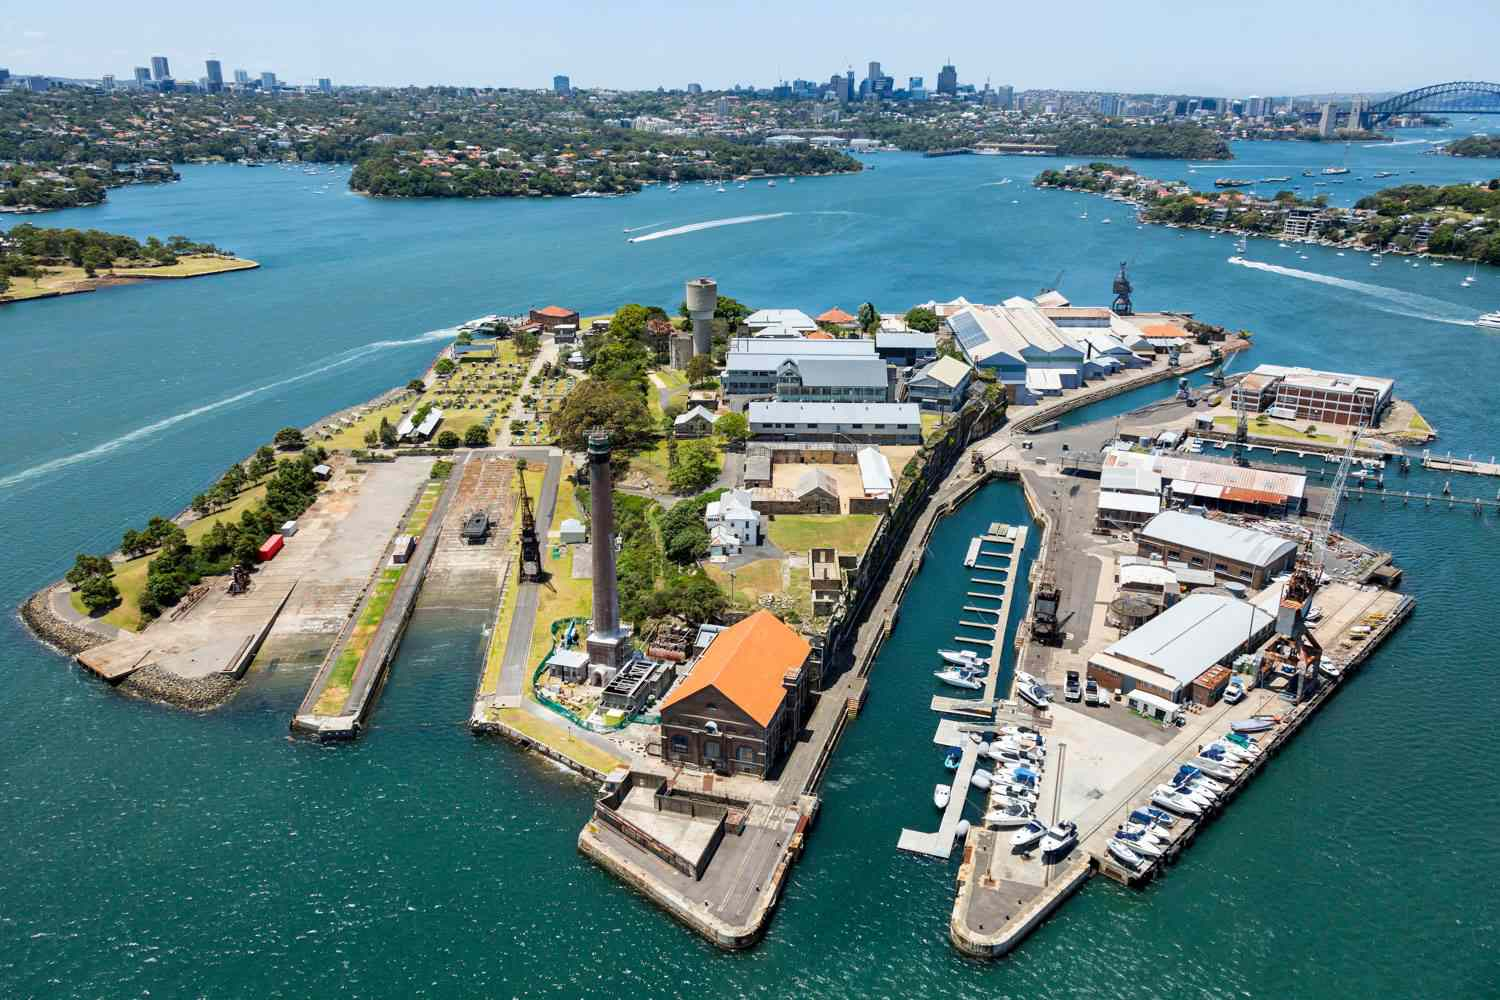 Aerial view of Cockatoo Island in Sydney Harbour